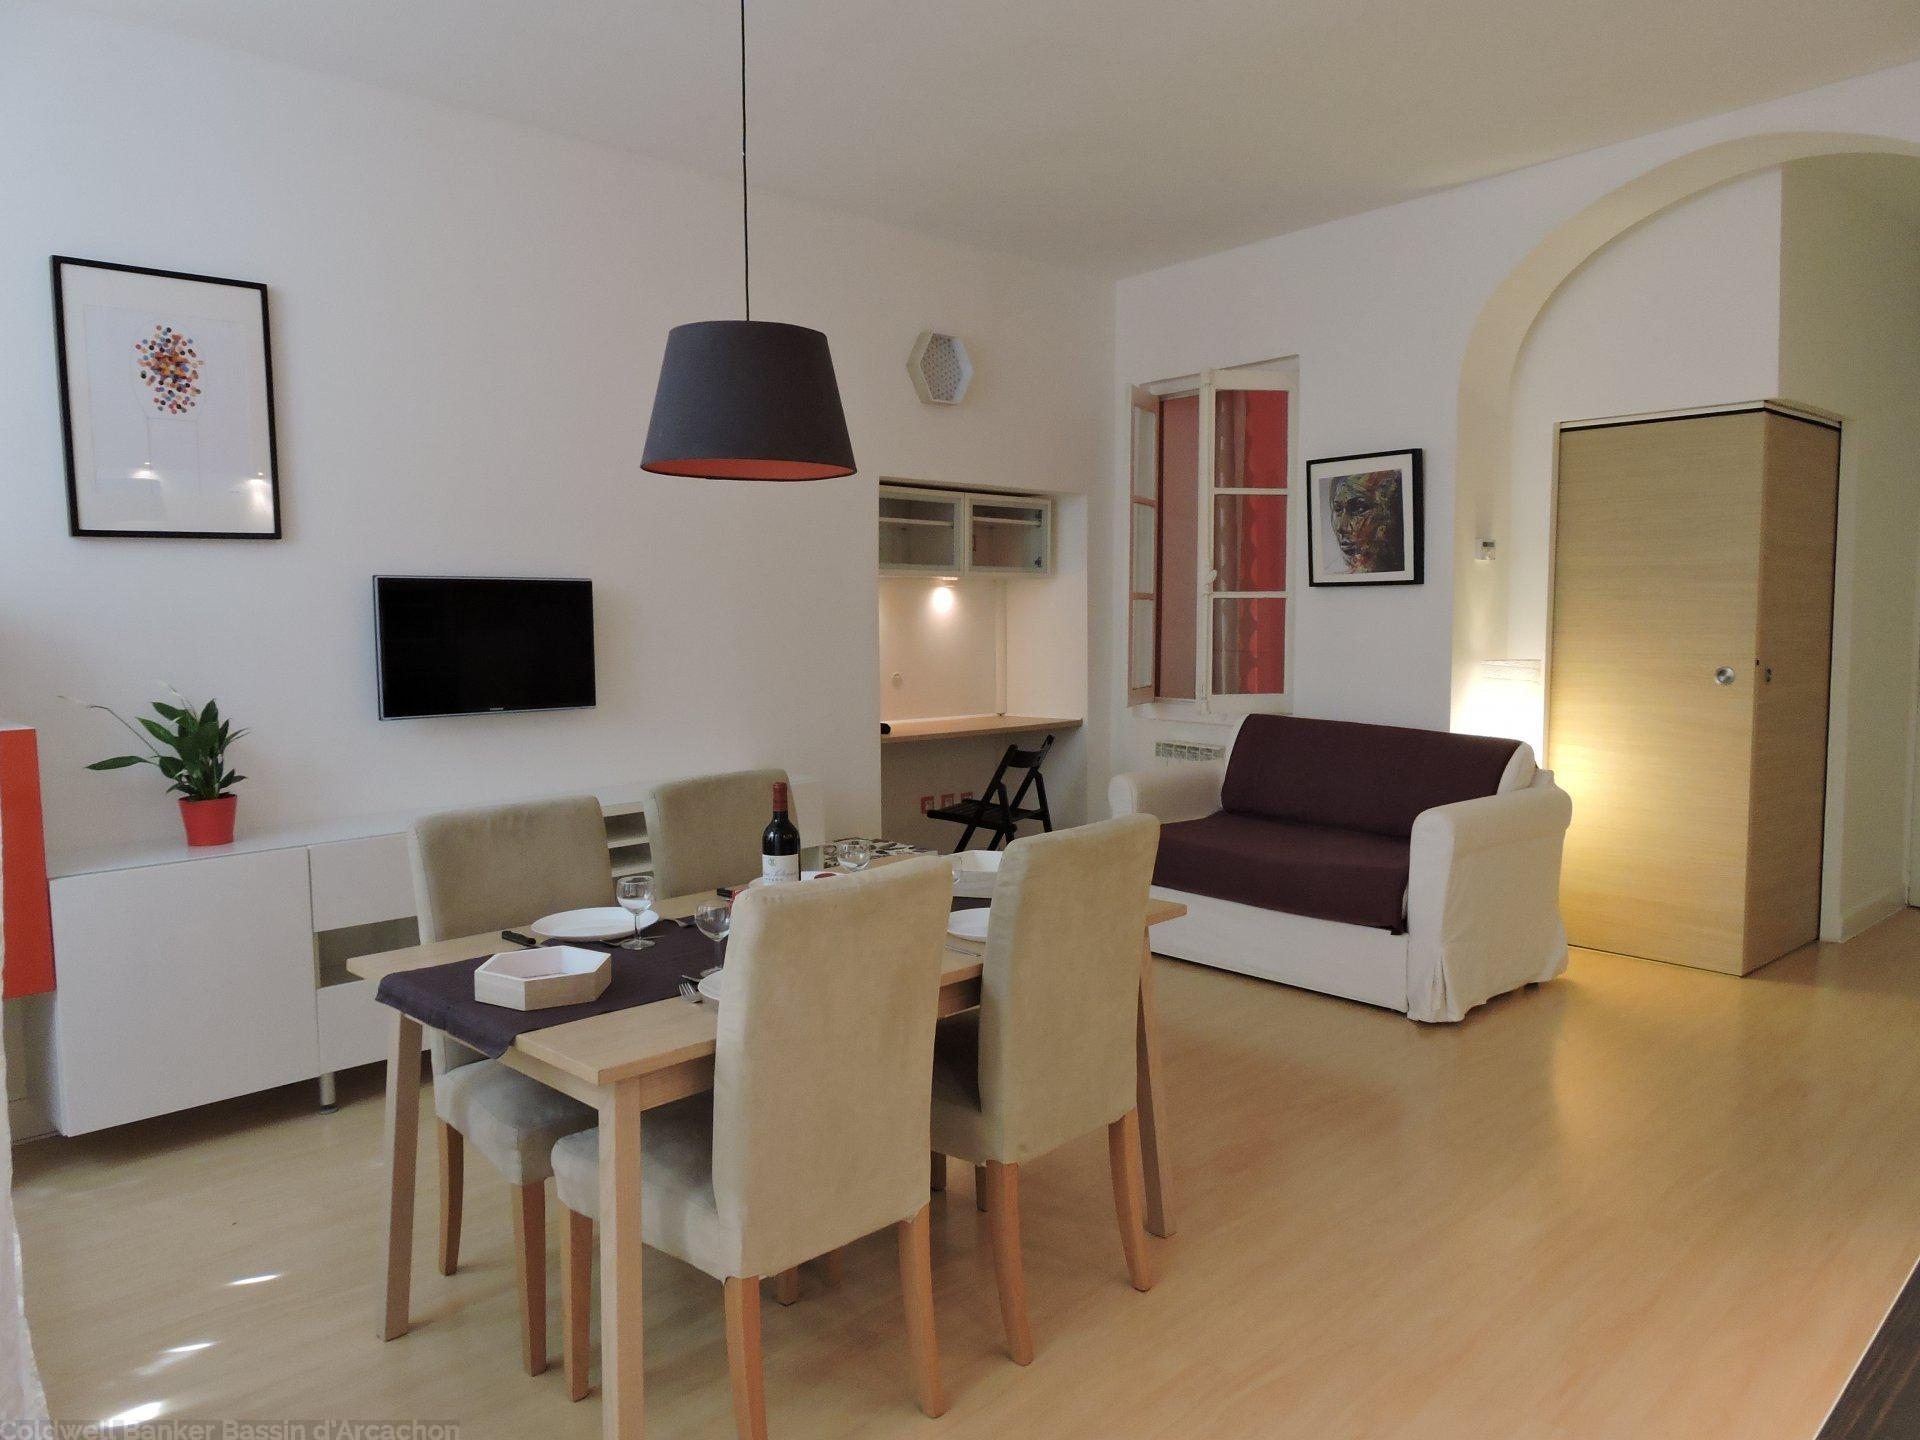 Vente appartement bordeaux saint michel coldwell banker for Acheter un appartement 0 bordeaux